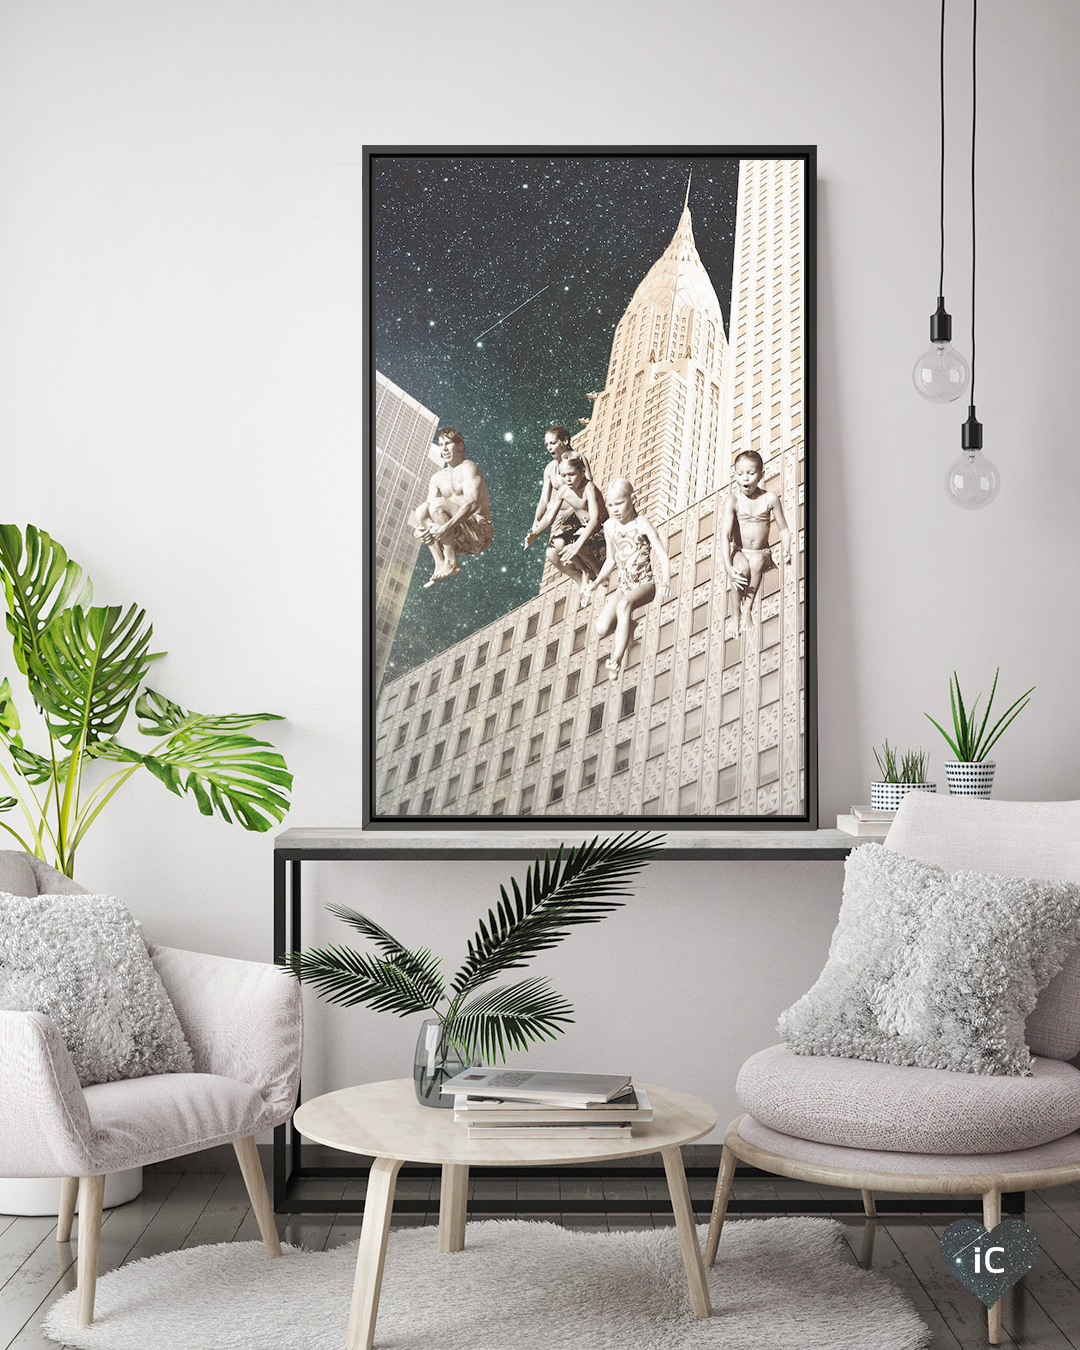 kids cannon balling off a high-rise building with cosmic starry sky in view